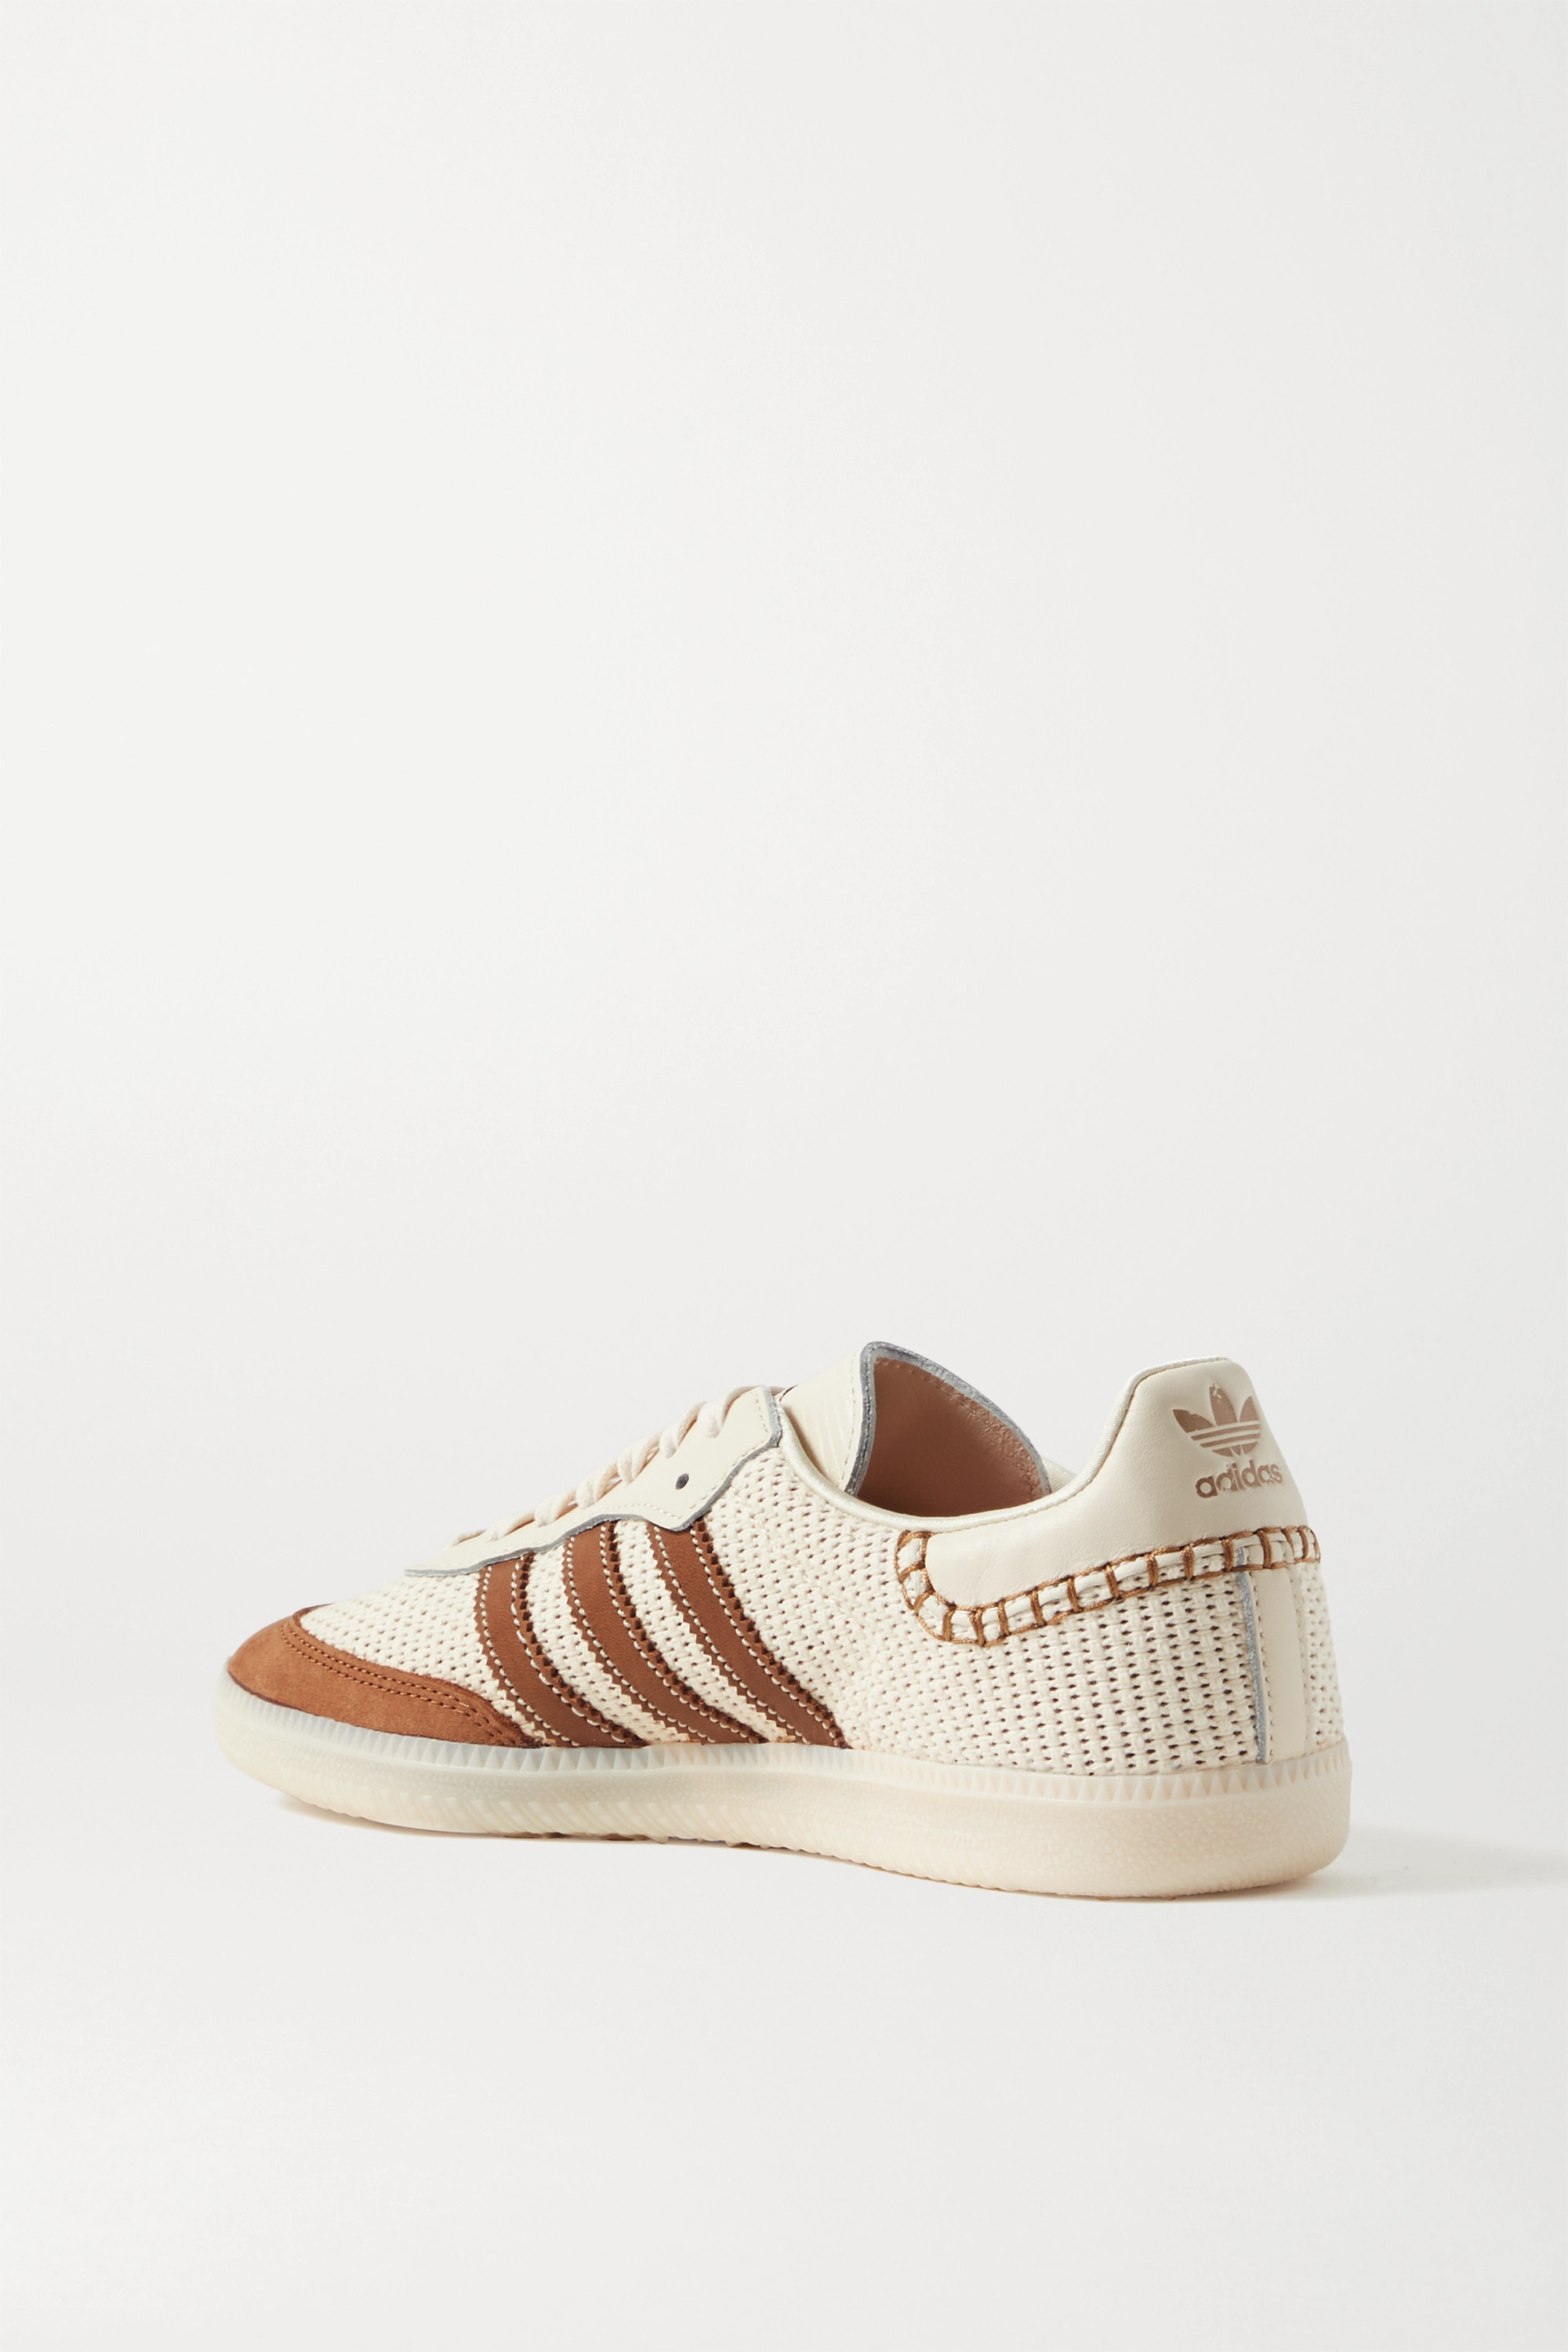 adidas Originals + Wales Bonner Samba suede, leather and mesh sneakers